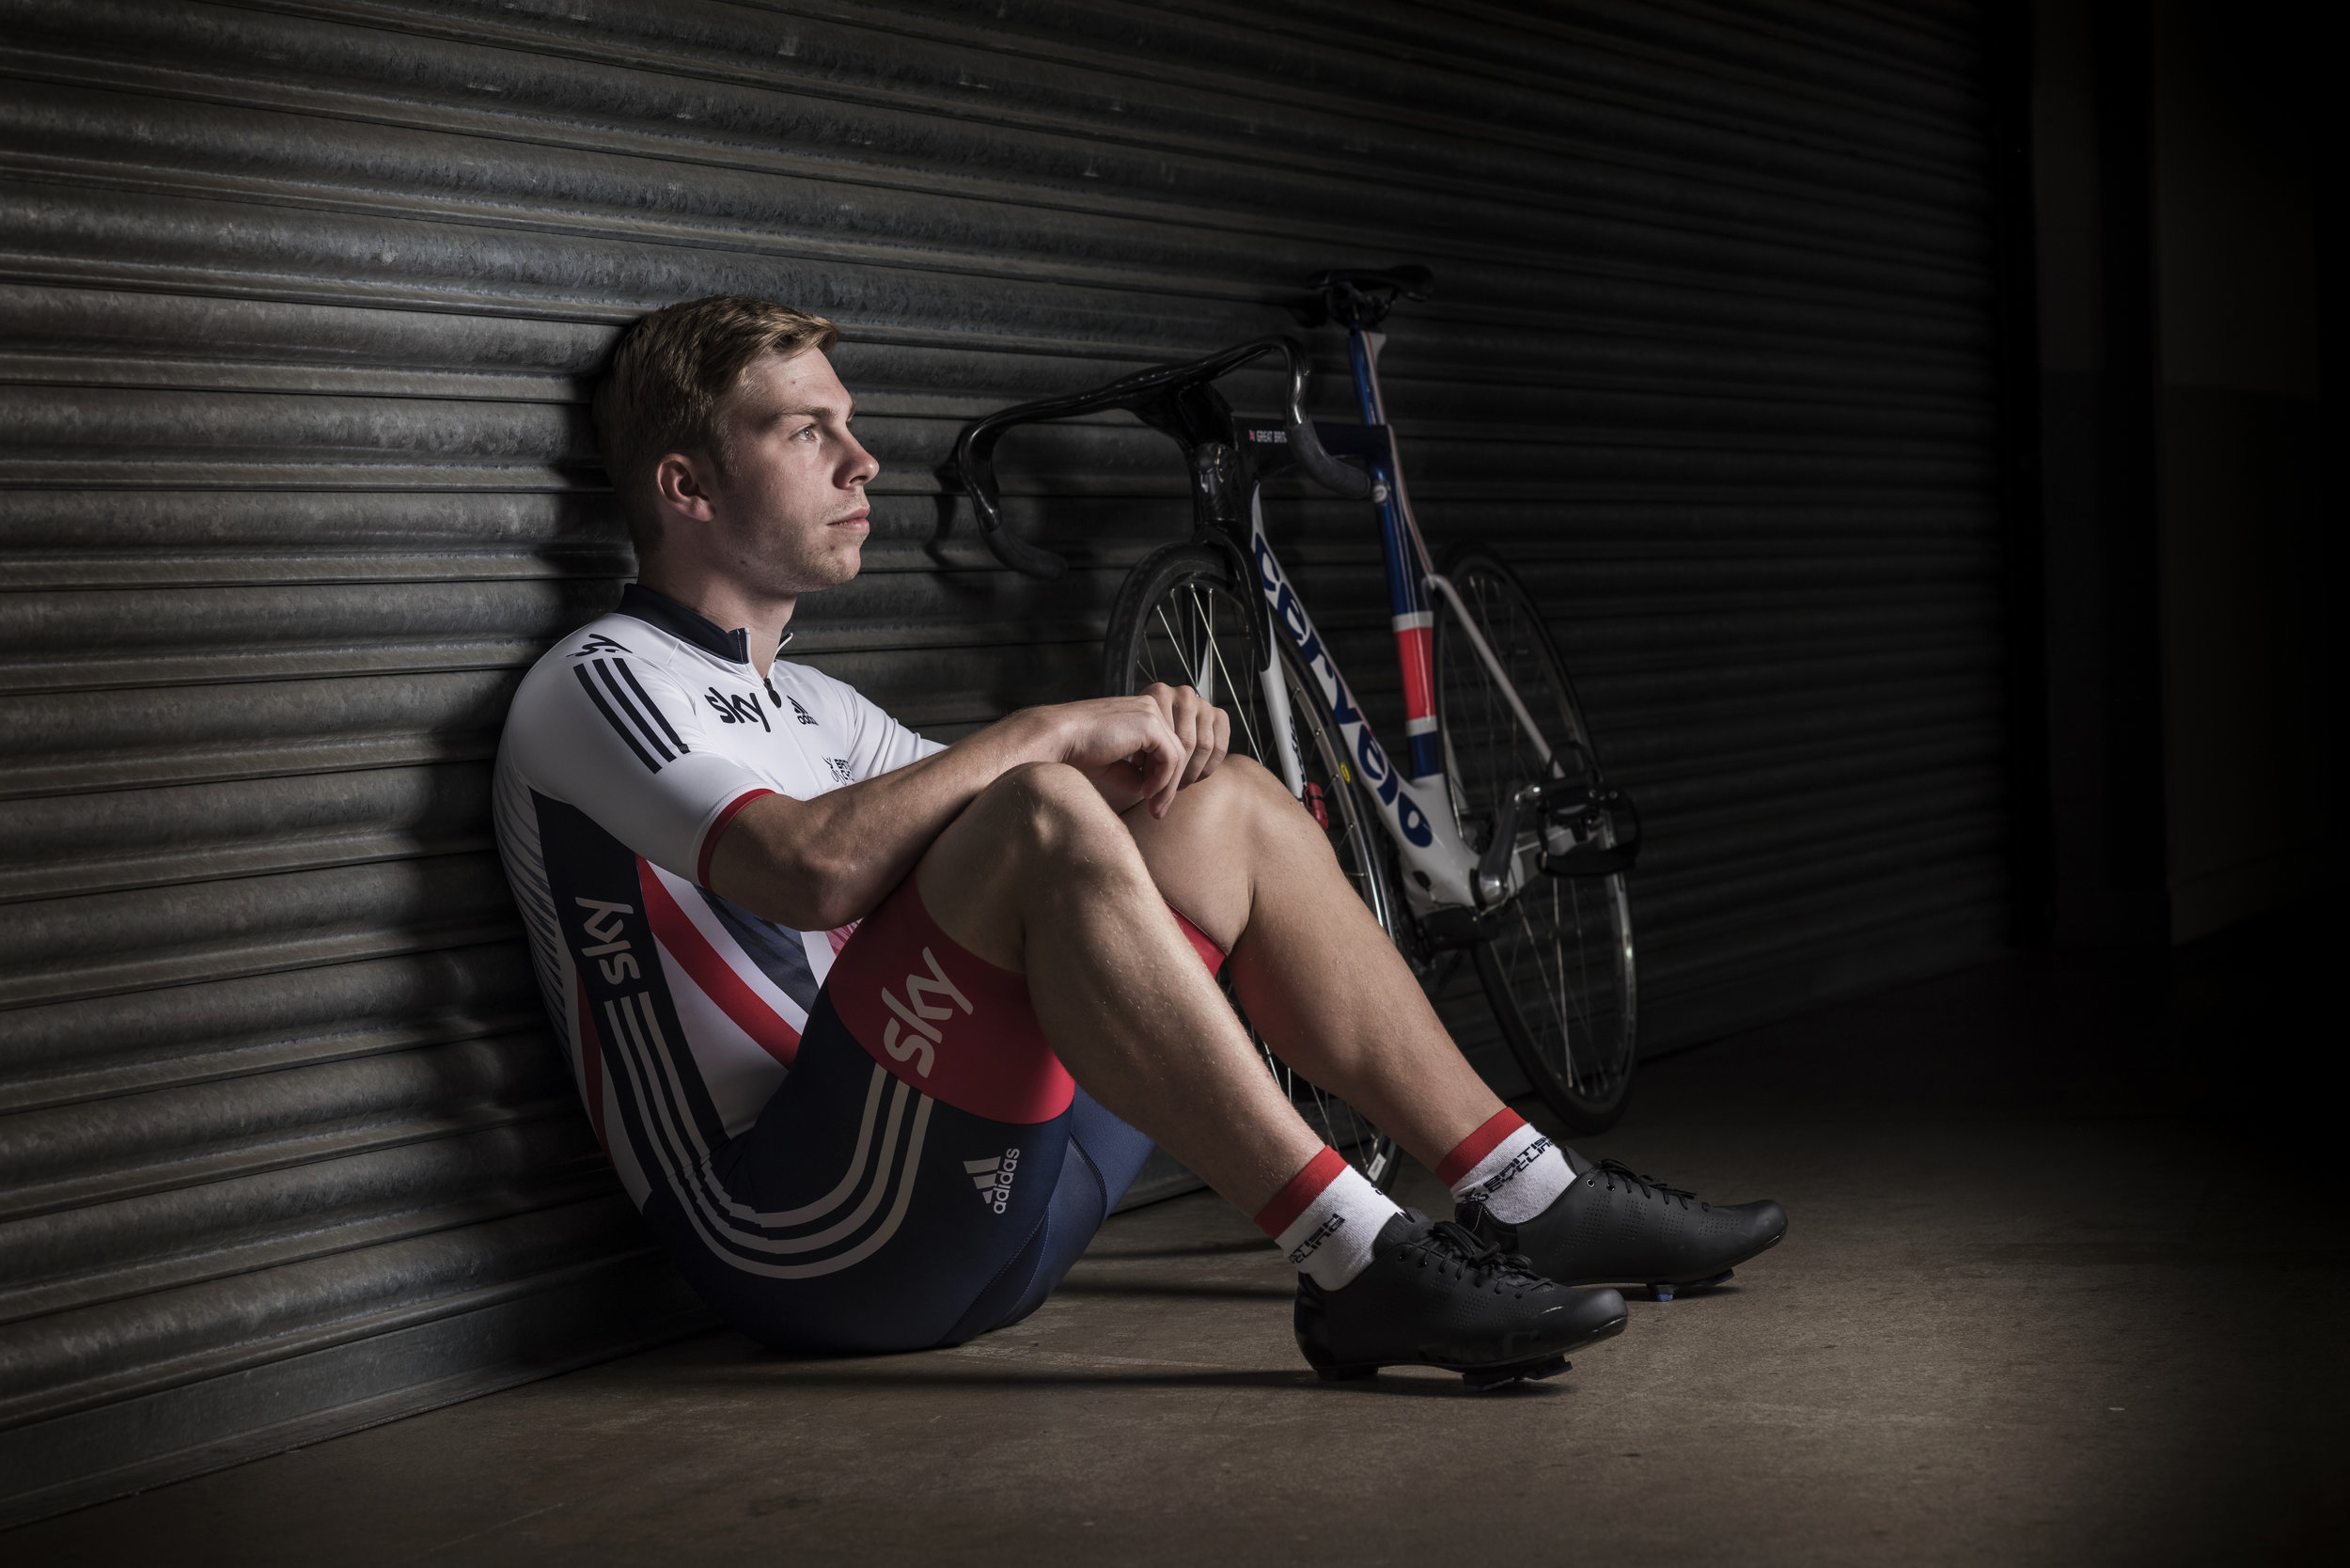 OLYMPIC CHAMPION TRACK CYCLIST PHILIP HINDES PHOTOGRAPHED AT NATIONAL CYCLING CENTER MANCHESTER 5TH JULY 2016 PHOTO CREDIT PAUL COOPER